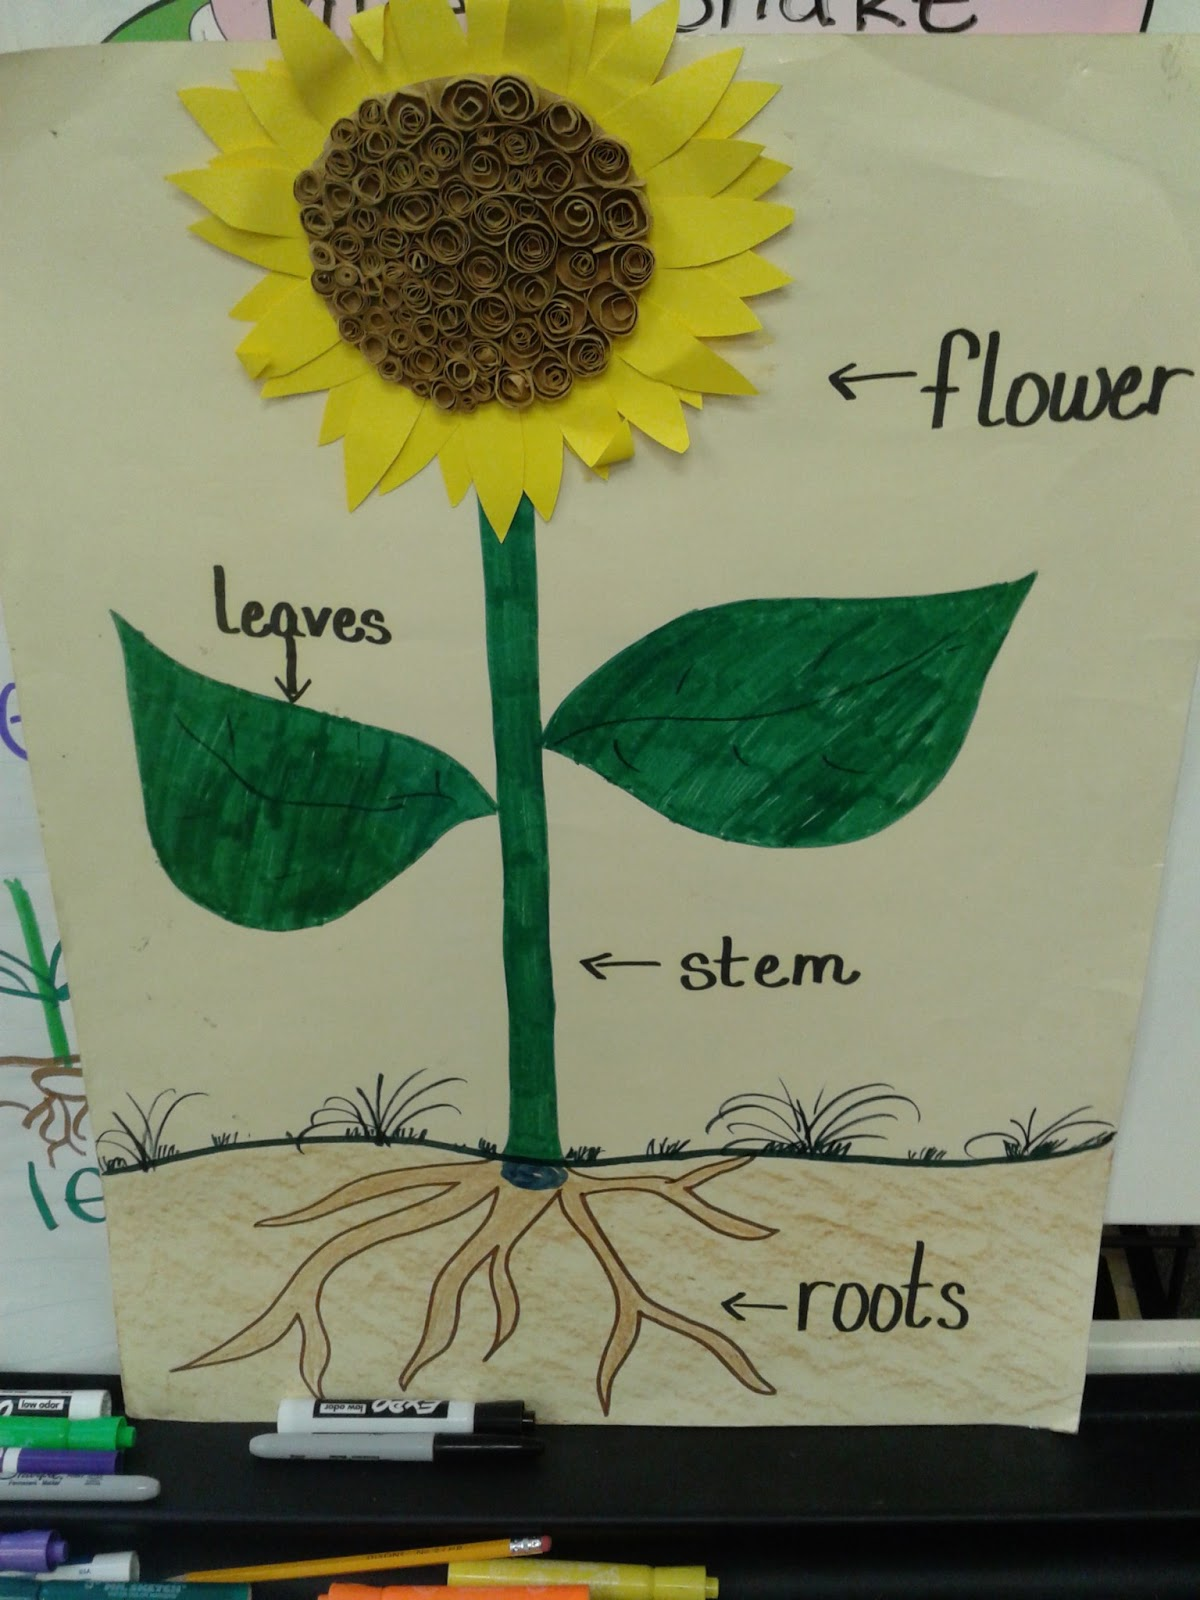 Bd E E A C together with  likewise Sunflowers Poem Karin Best furthermore Flower Chart together with Seed Needs. on plant life cycle poem